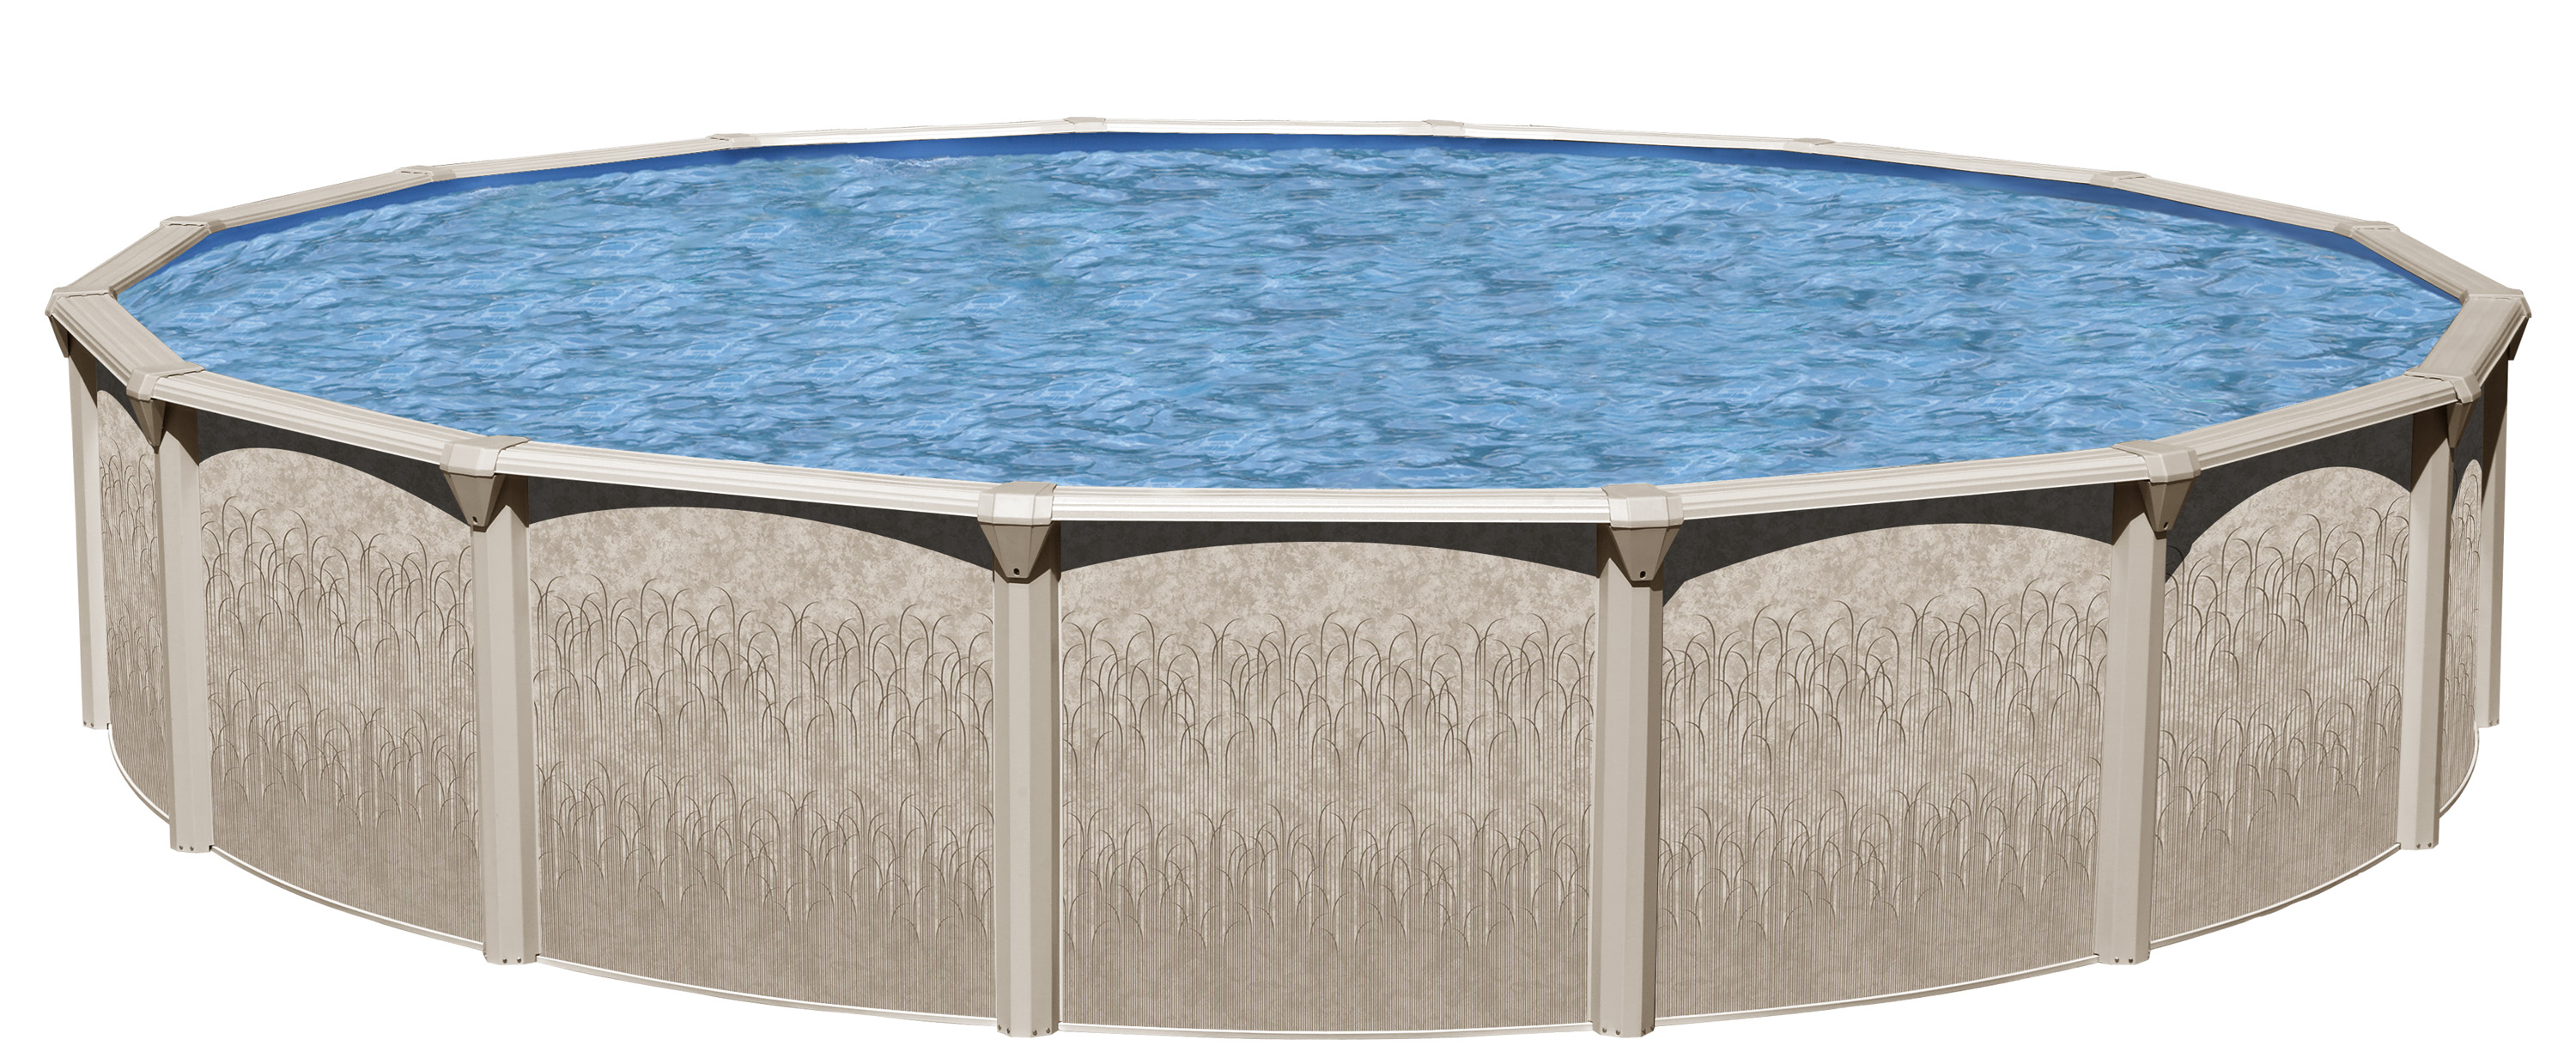 "Galveston 18' X 52"" Round Above Ground Pool package by Swim N Play"